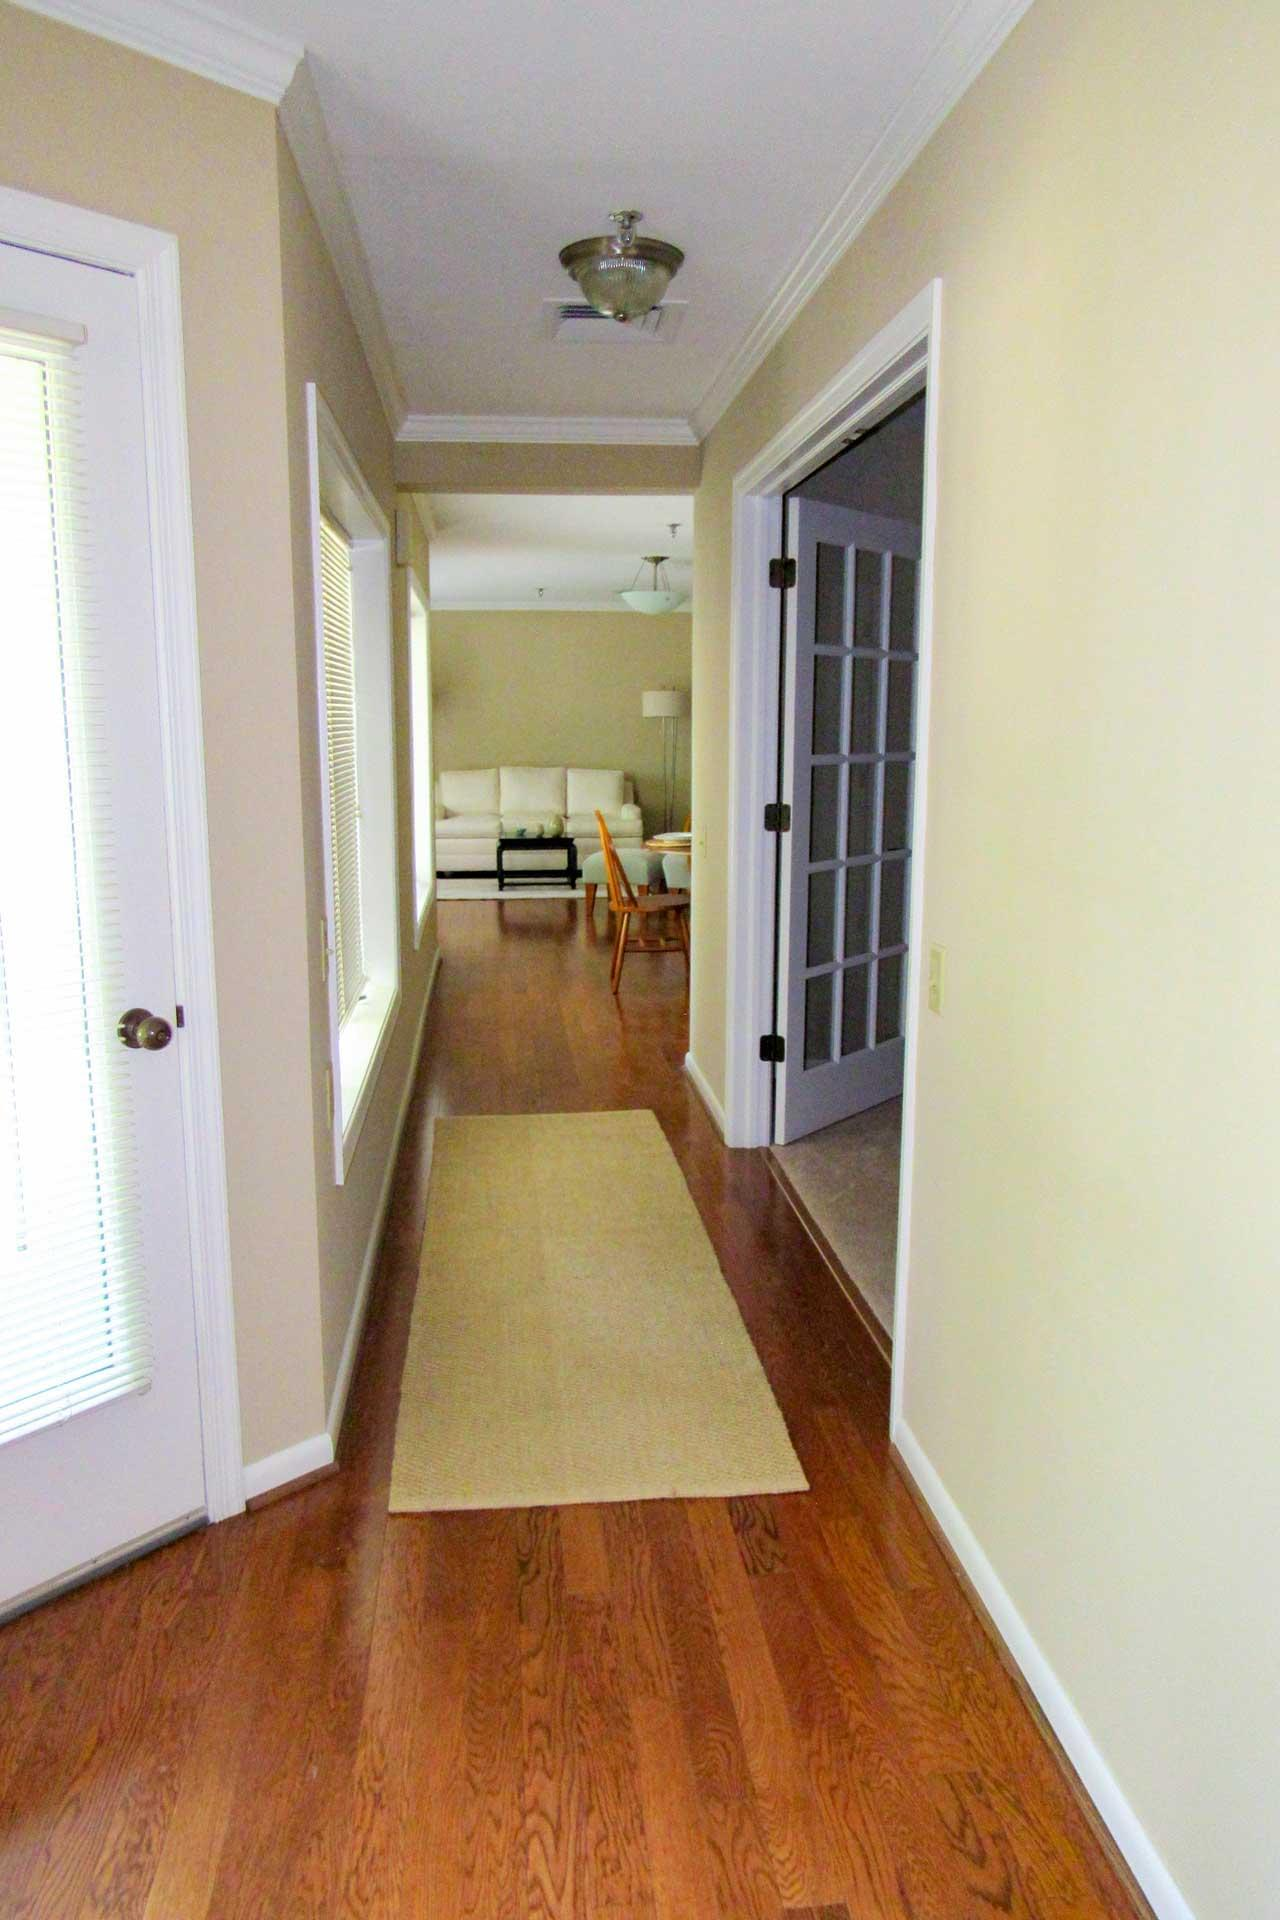 Photo of Rappahannock Westminster Canterbury, Assisted Living, Nursing Home, Independent Living, CCRC, Irvington, VA 3